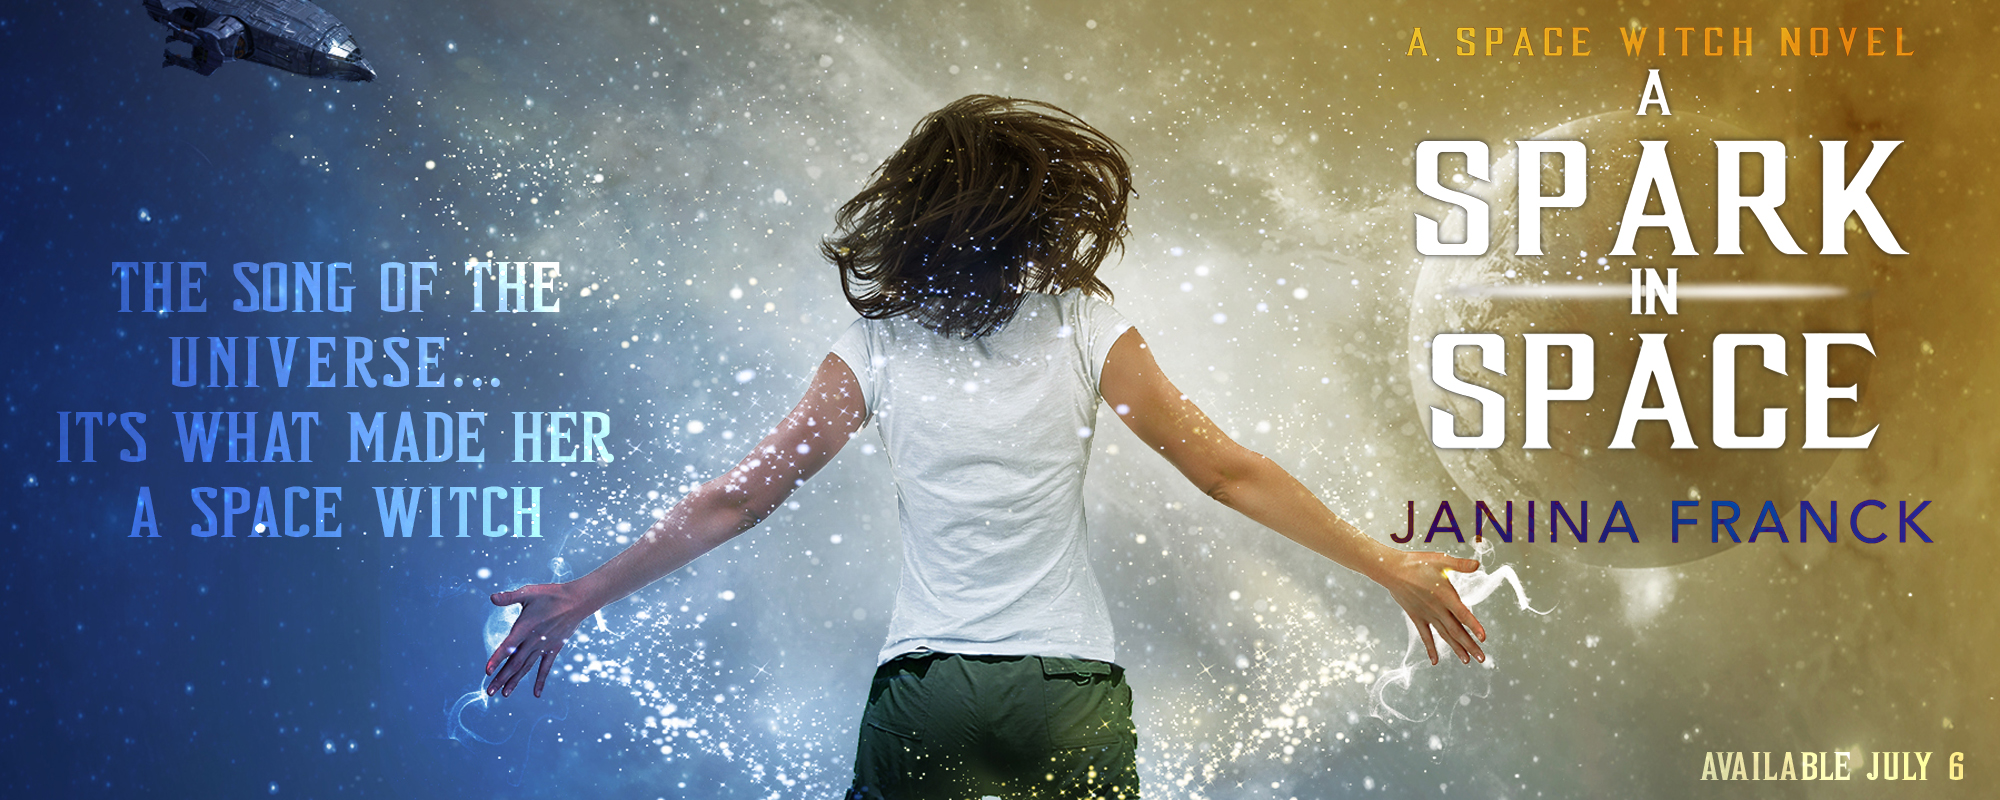 A Spark in Space by Janina Franck, coming soon